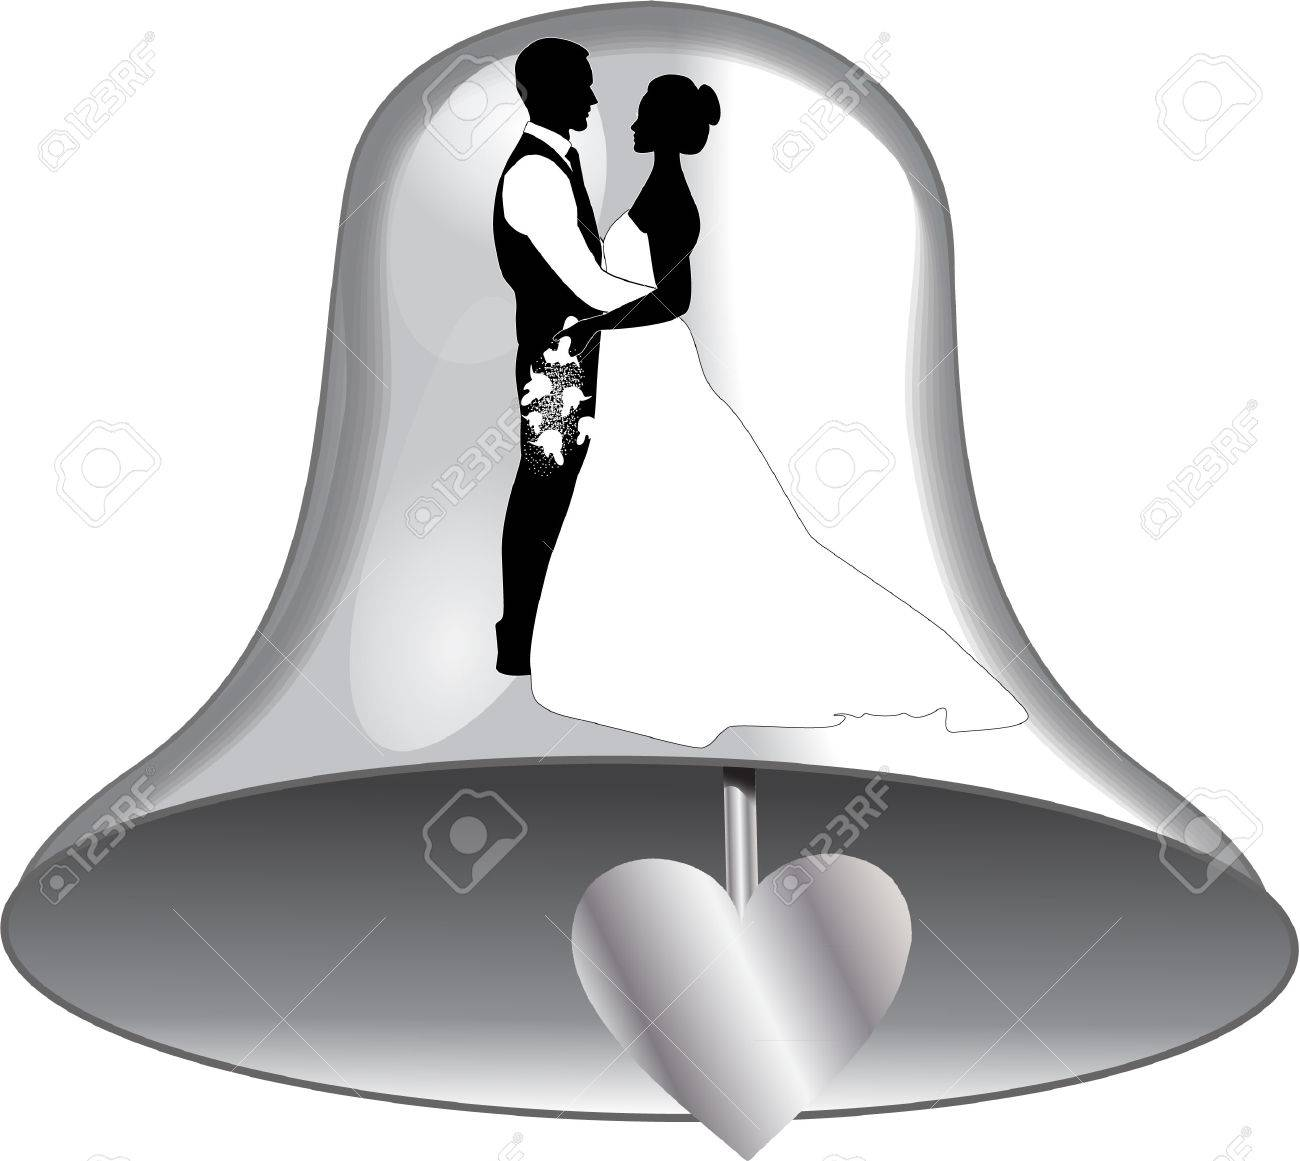 Wedding Bells Images.Wedding Bell With Bride And Groom